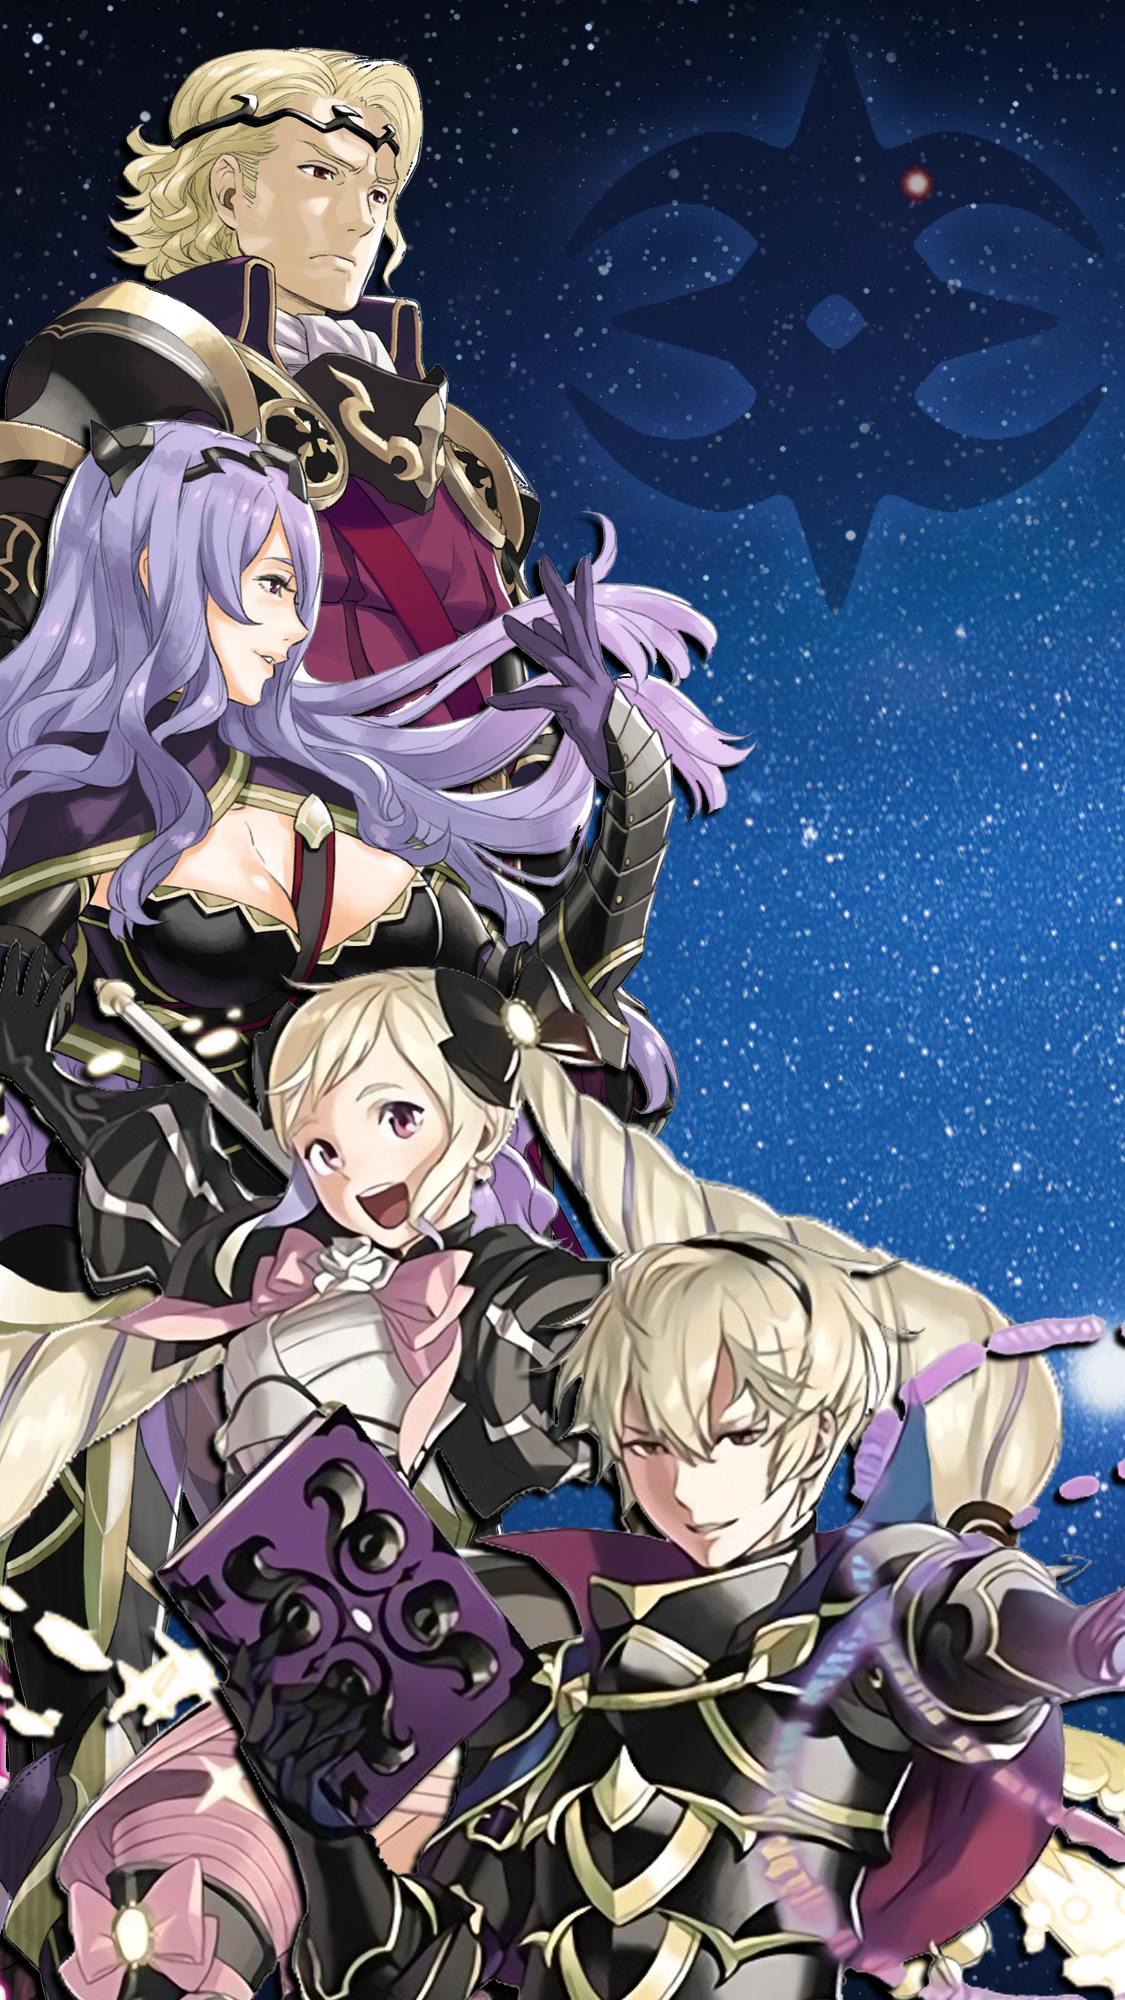 Fire Emblem Conquest Mobile Phone Wallpaper By Kaz Kirigiri On